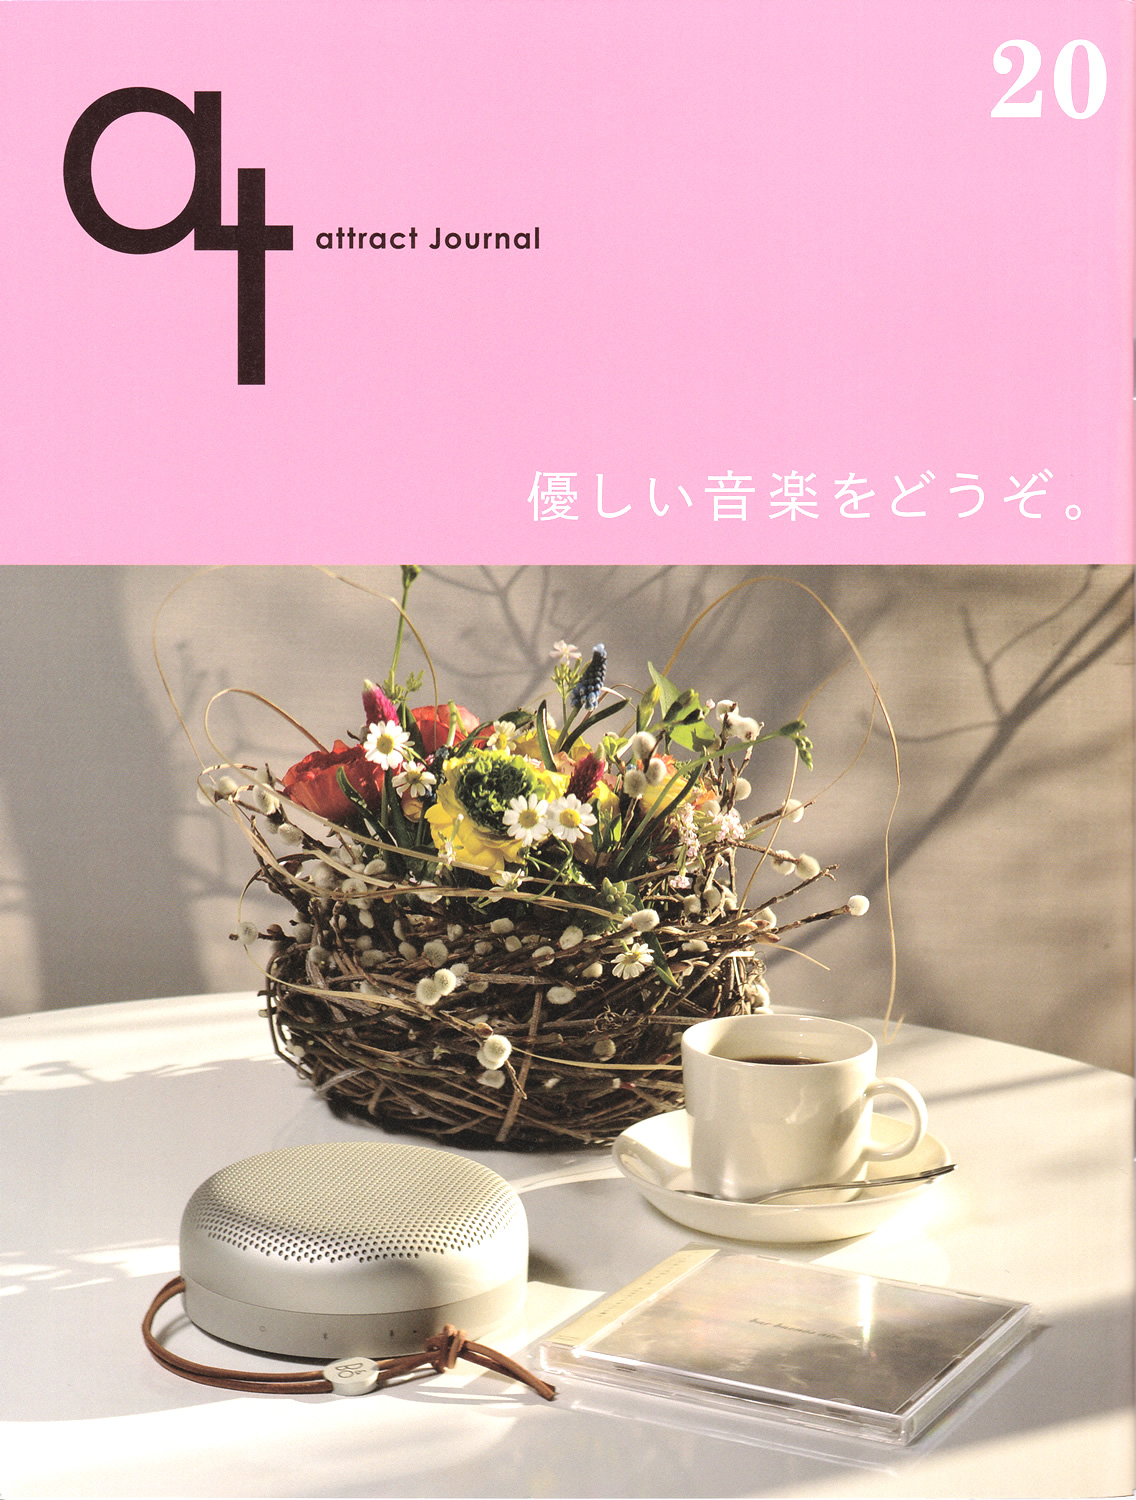 高知の情報誌『attract Journal』への掲載/ APPEARS ON attract Journal